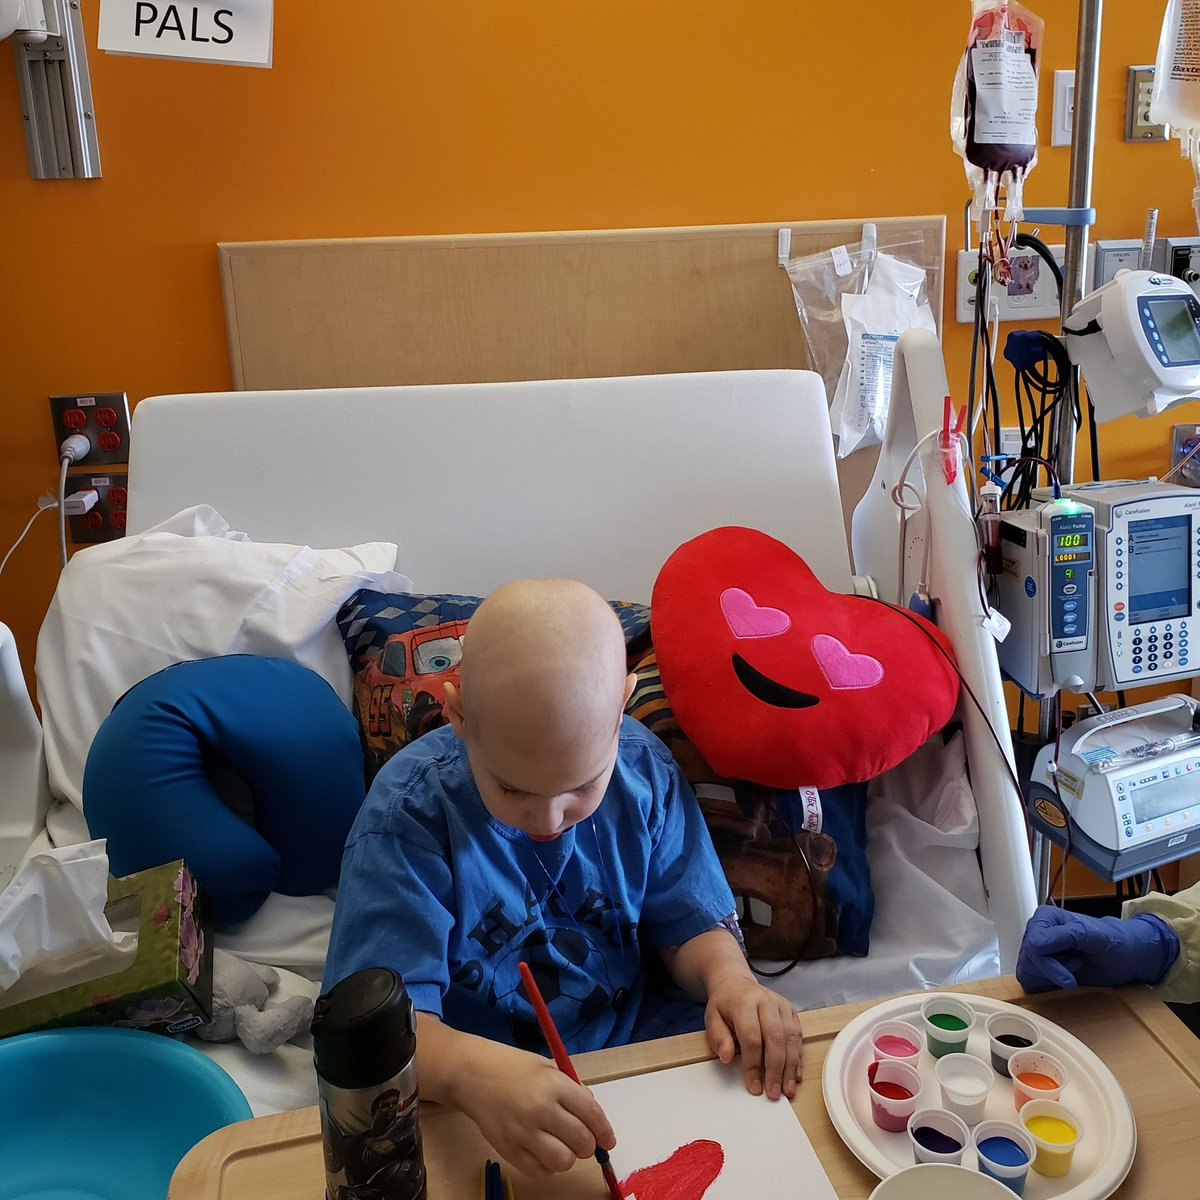 @CanadasLifeline Thank you to your donors of blood, plasma and stem cells. We're going to need them all eventually to win against lymphoma and my son got his first blood transfusion today. I've been a donor before, but never understood it's real importance until today. pic.twitter.com/NFwEqgnxRW